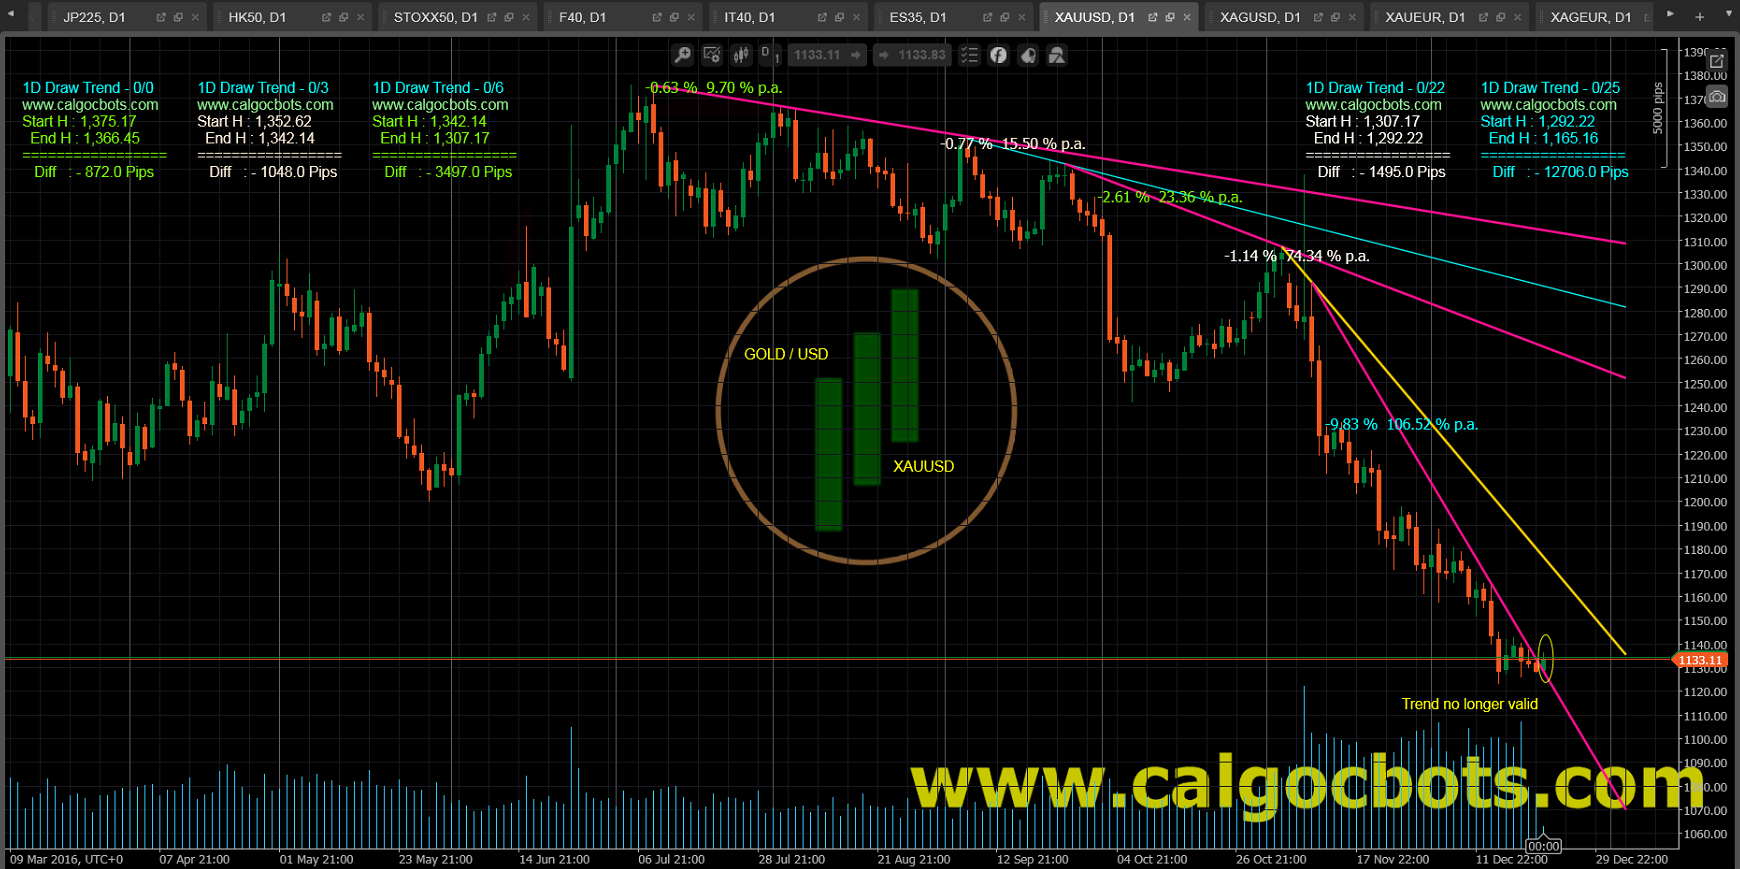 1D Draw Trend - cAlgo and cTrader Indicator - Gold USD Spot - XAUUSD Daily Chart - 003